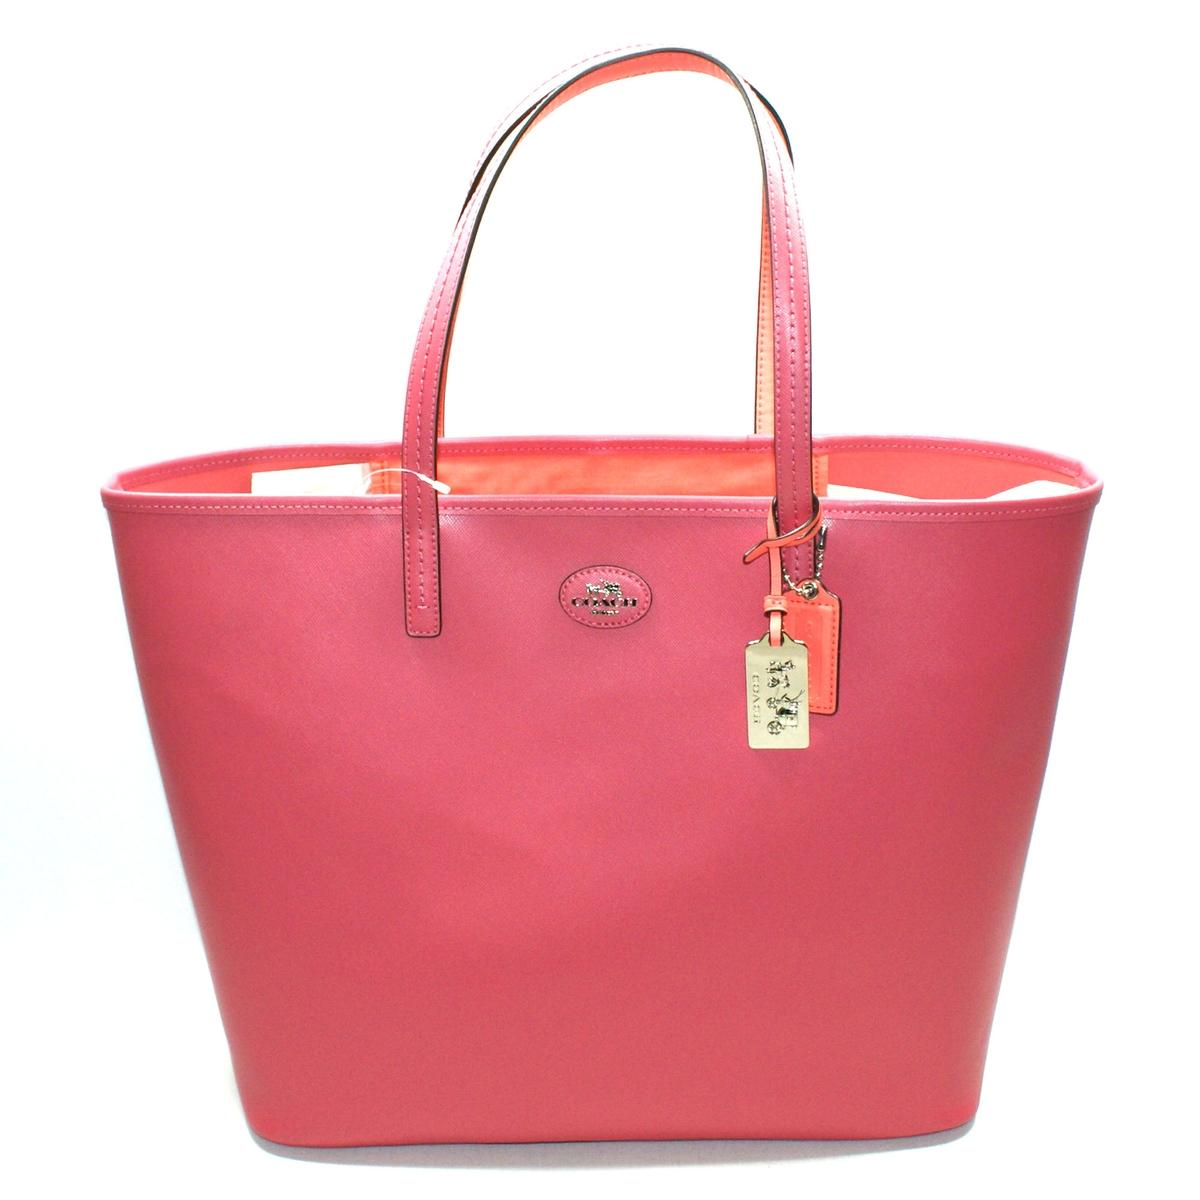 49a212c293fc Home · Coach · Loganberry Coral Leather Large Tote Bag. CLICK THUMBNAIL TO  ZOOM. Found ...